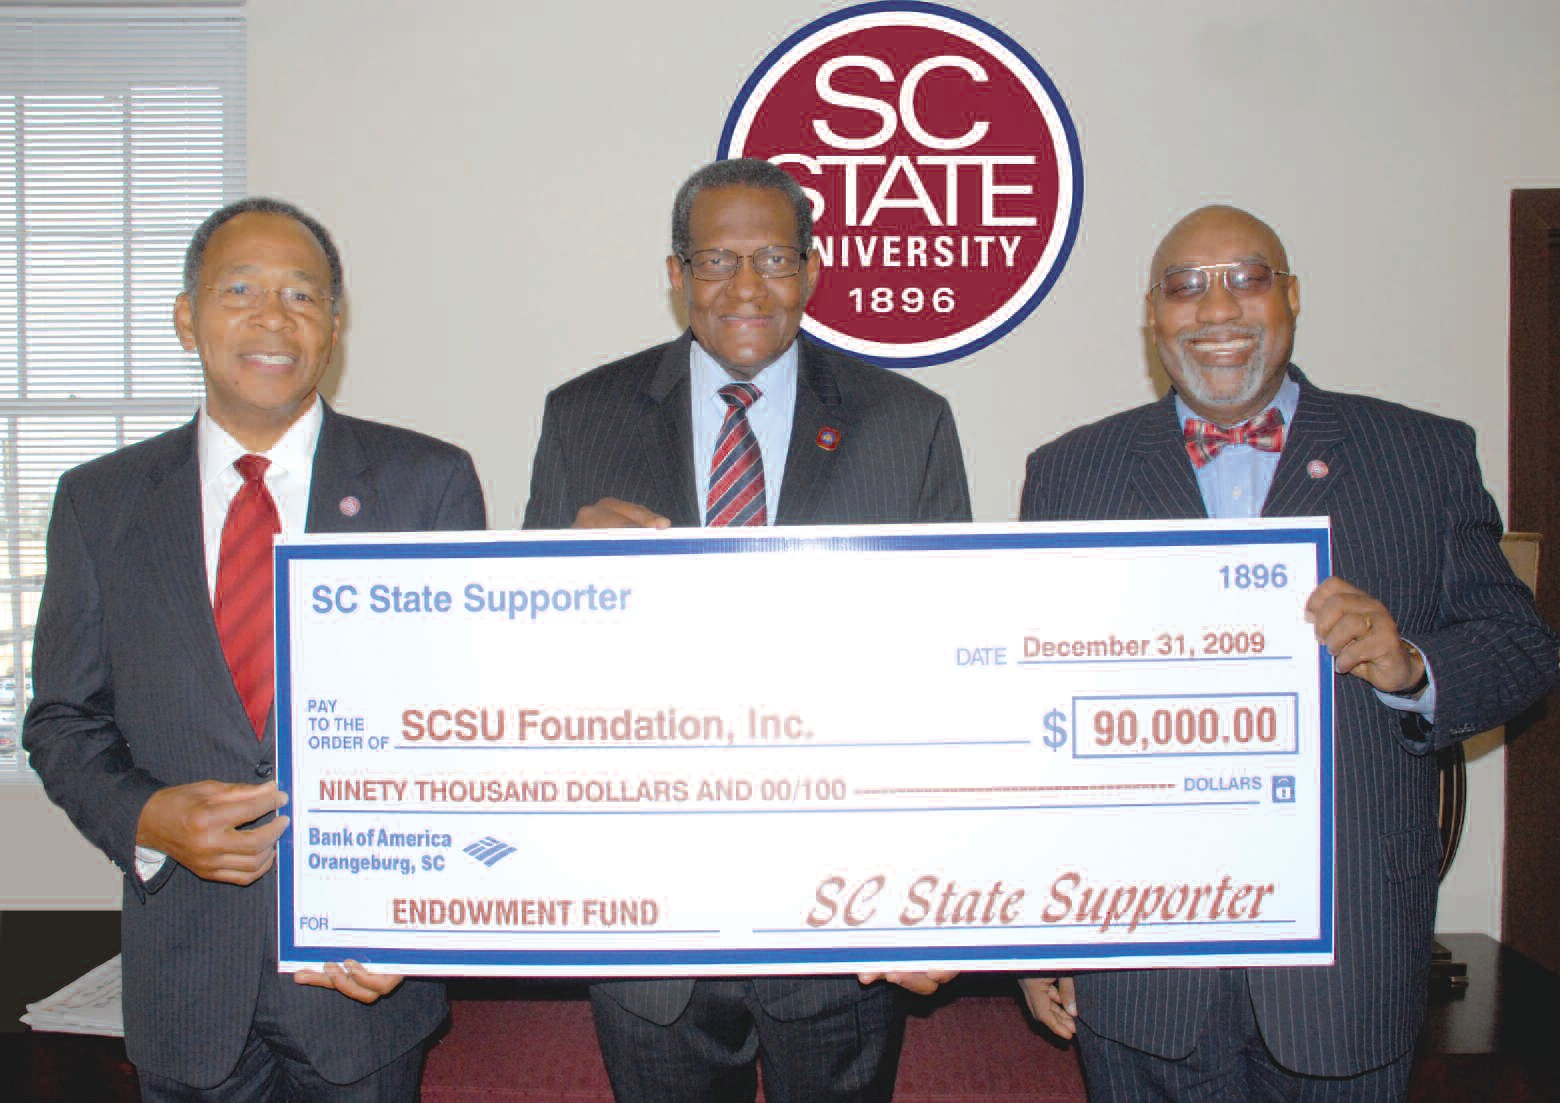 (L to R) Dr. Jackie Epps, former interim vice-president of Institutional Advancement; Dr. George E. Cooper, president of SC State University; and Dr. Rodell Lawrence, assistant vicepresident of Alumni Relations